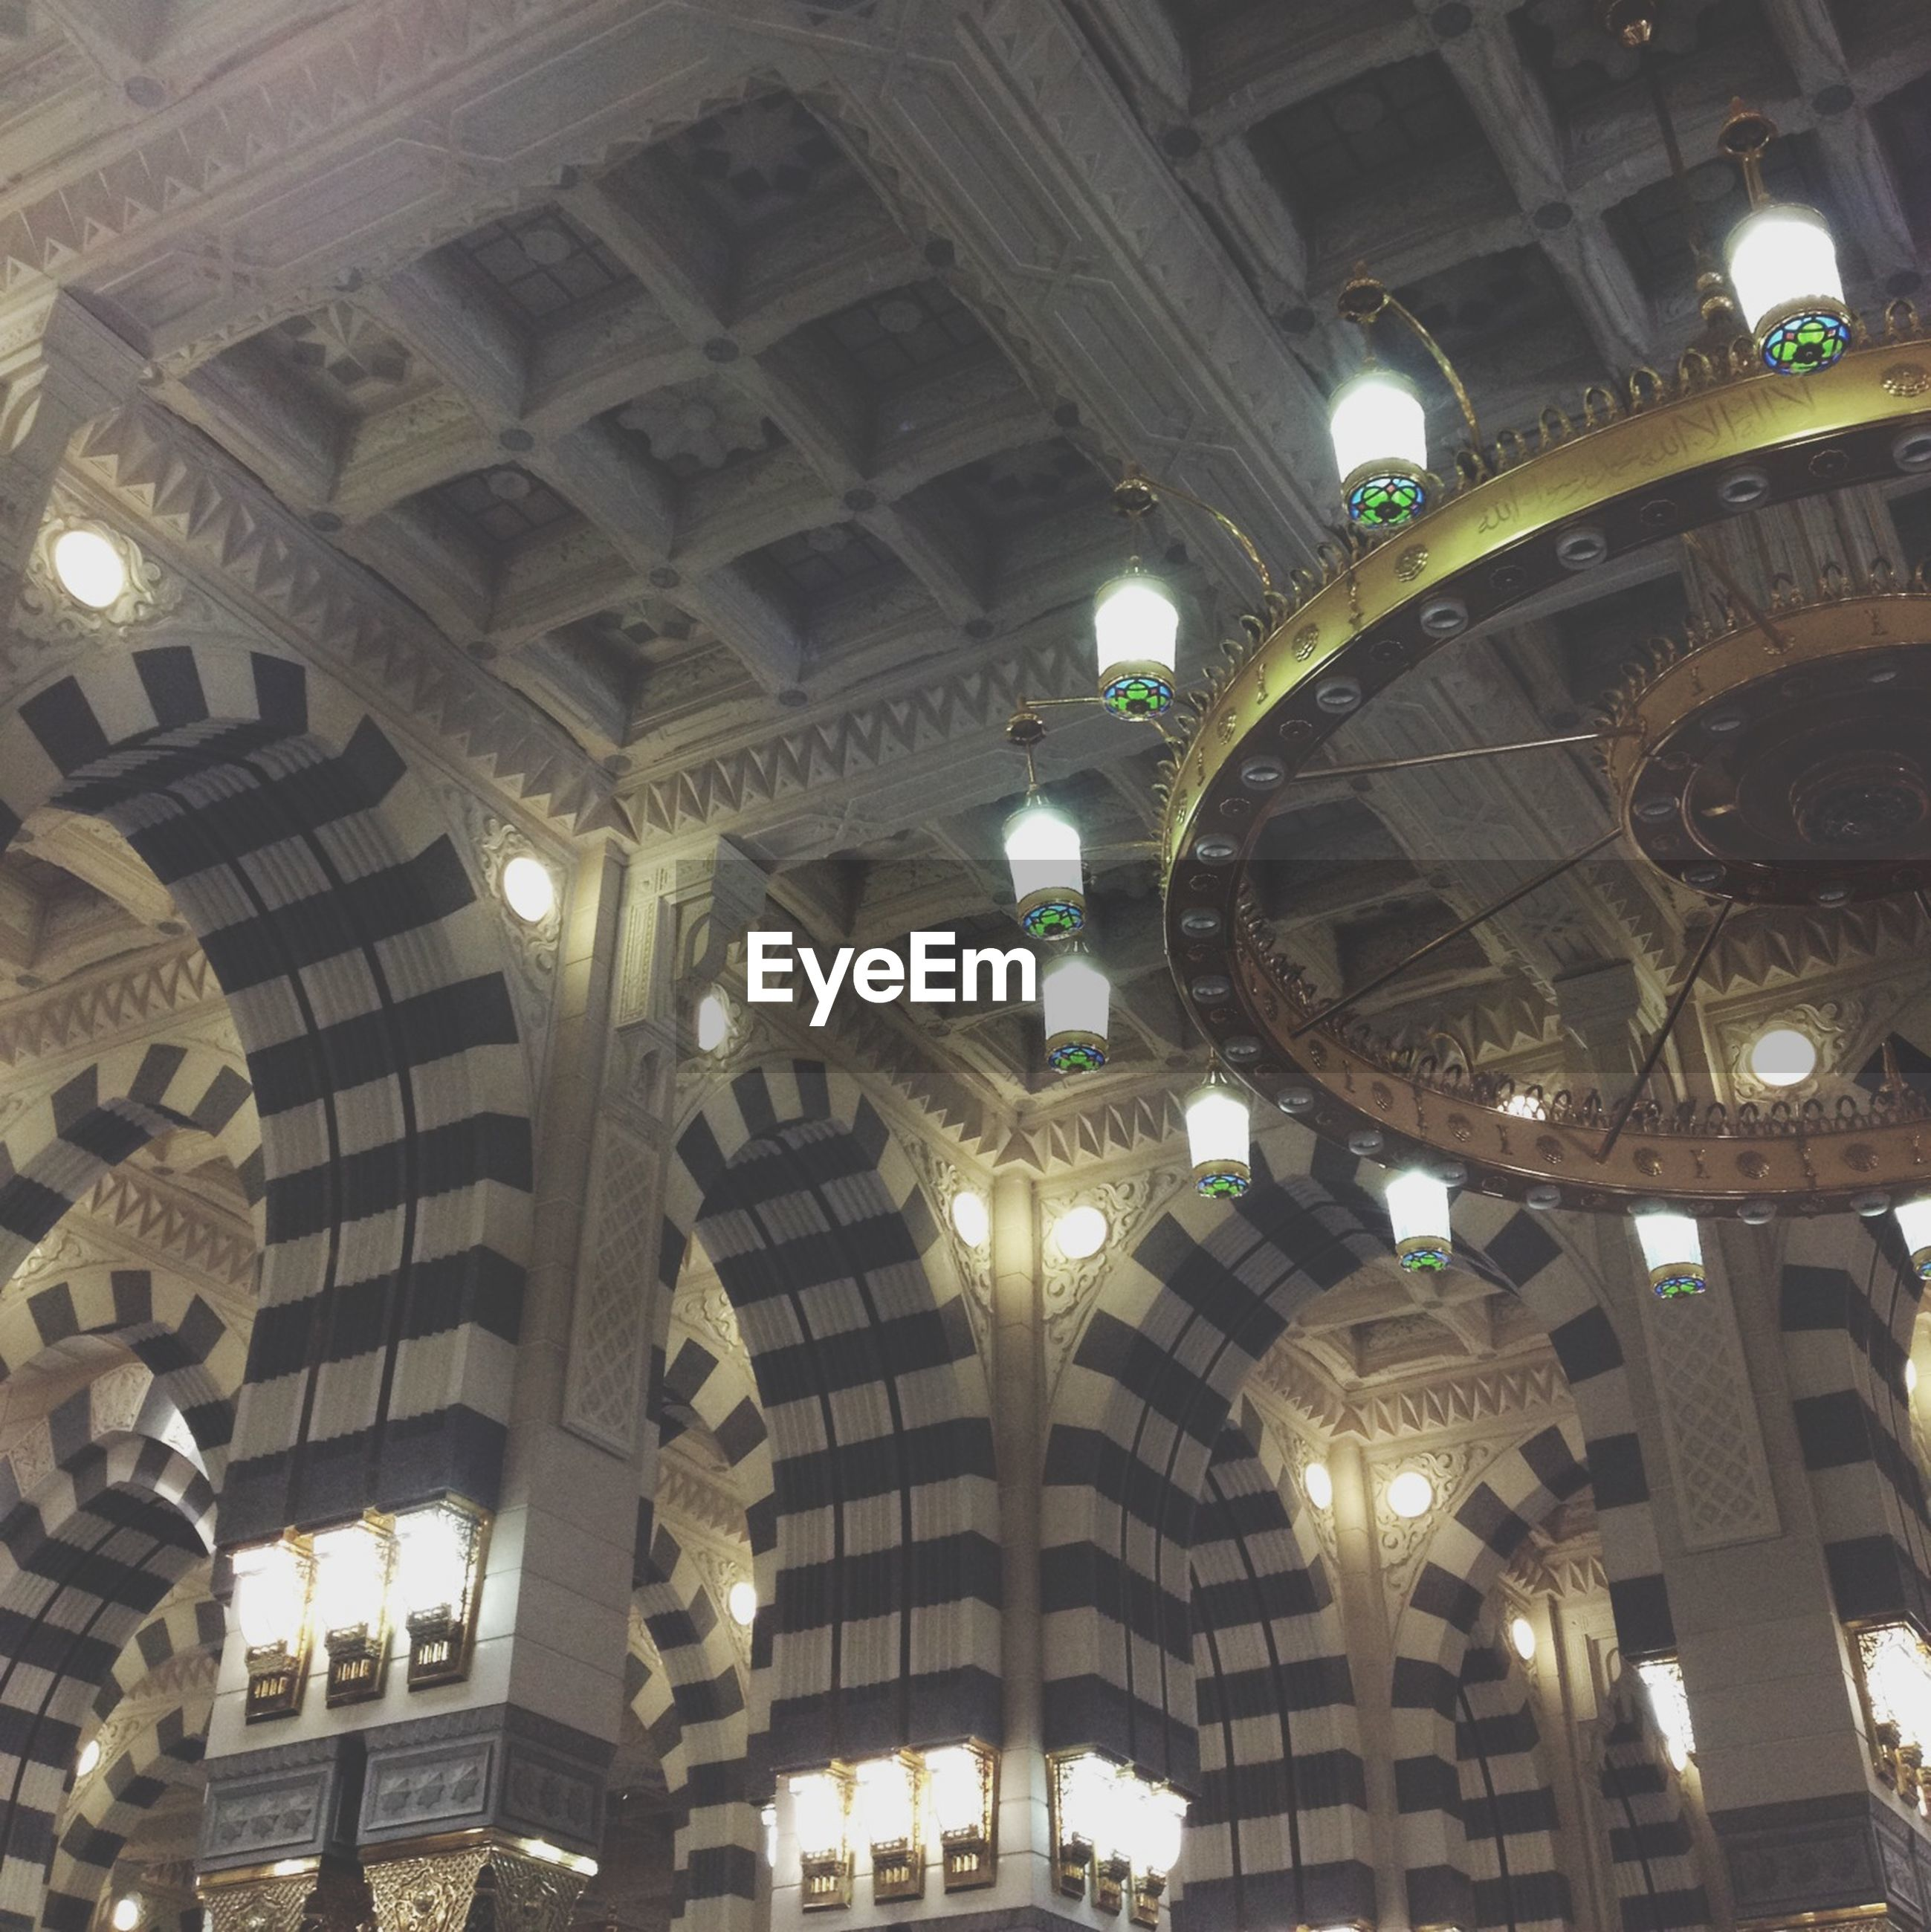 architecture, built structure, low angle view, ceiling, indoors, illuminated, arch, lighting equipment, building exterior, architectural feature, famous place, travel destinations, interior, chandelier, tourism, night, ornate, dome, travel, no people